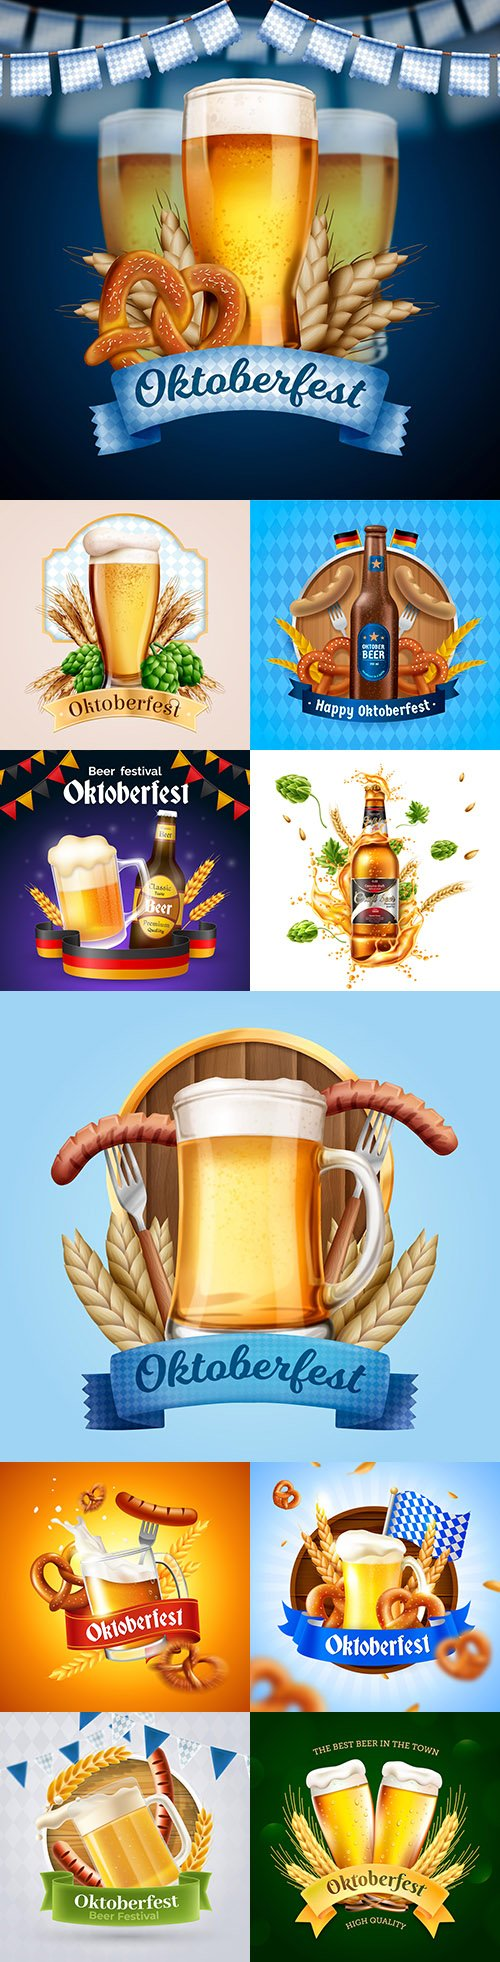 Realistic Oktoberfest banner with pint of beer illustration